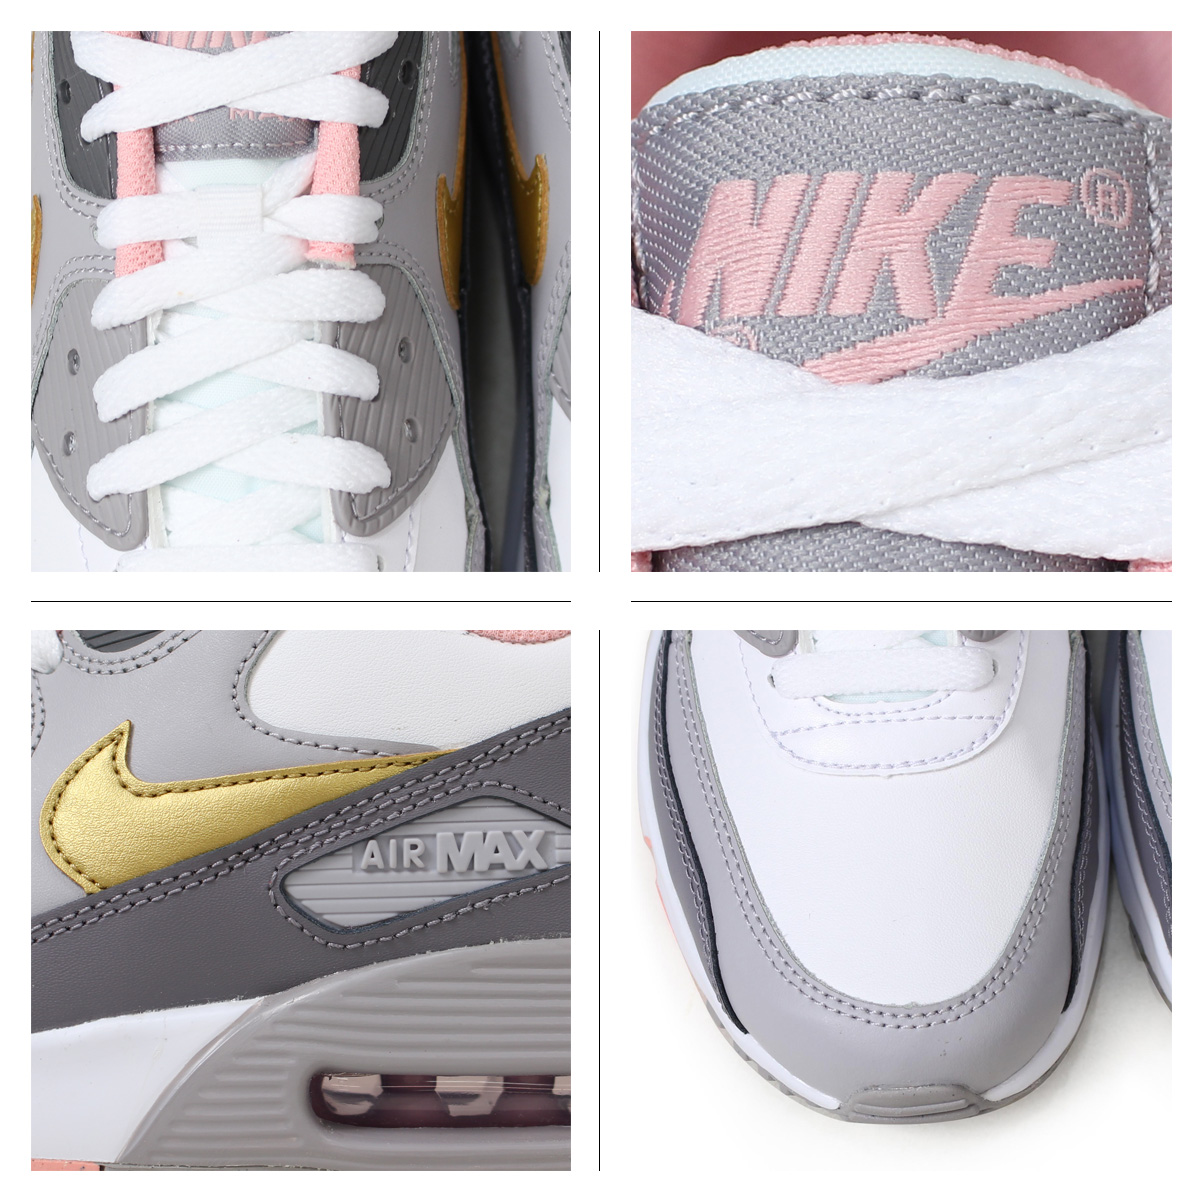 f0dd8eb511 ... Nike NIKE Air Max 90 Lady's sneakers AIR MAX 90 LEATHER GS 833,376-011  gray ...